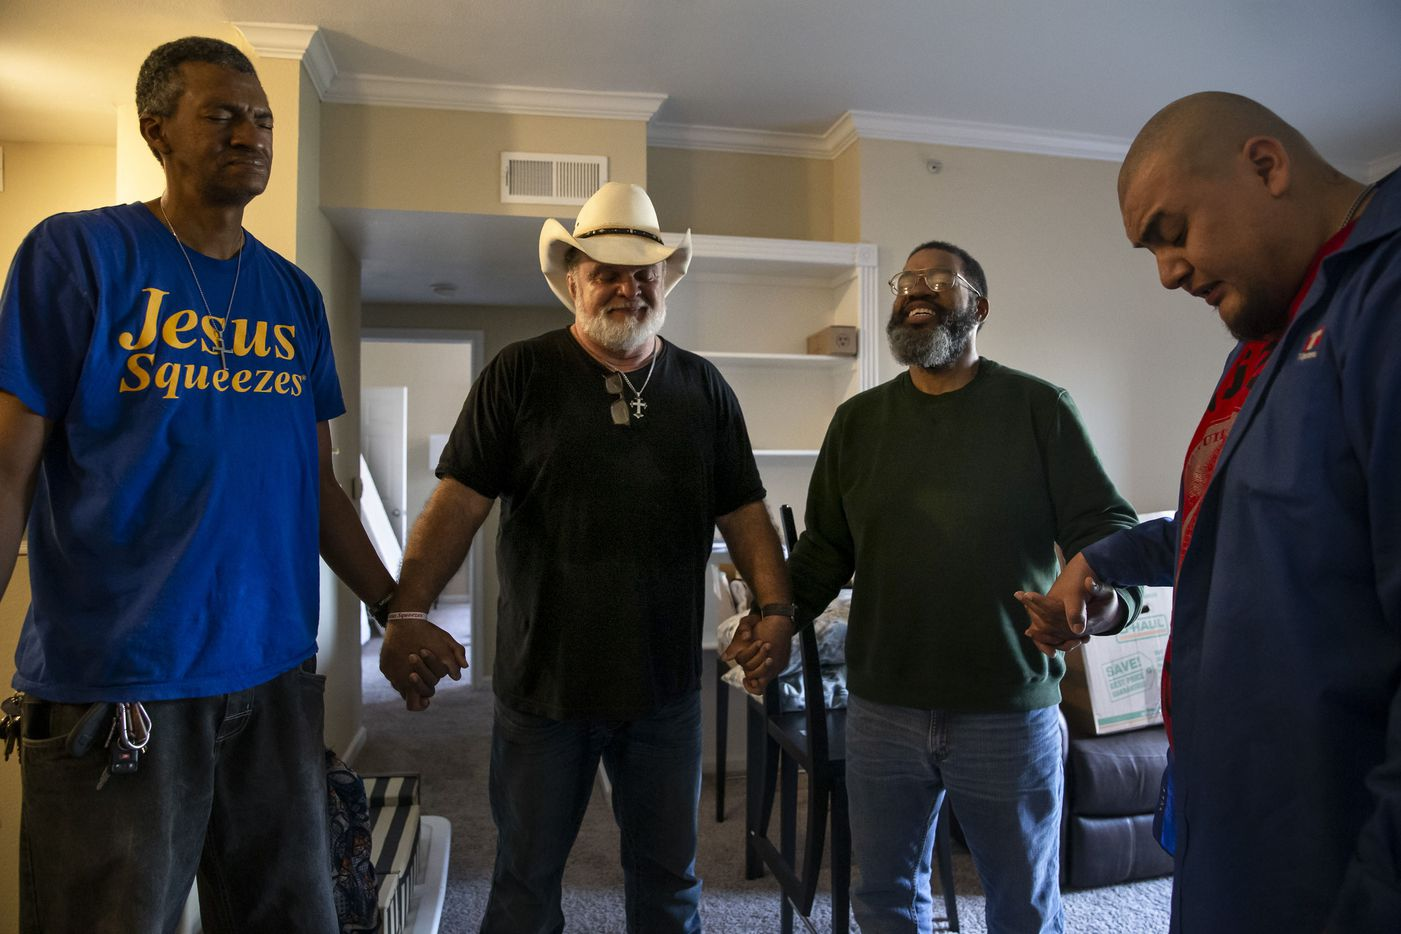 """From left: S.O.U.L. Church members Gerry """"Slim"""" Debnam, Pastor Leon Birdd, Randy Thornton and Israel Alonzo prayed to bless Thornton's new Cityplace apartment after helping him move in with donated furniture and other belongings on  Jan. 14, 2020. Thornton said he'd found a spiritual family at S.O.U.L. Church. """"Blood is thicker than water, but the Spirit will override everything,"""" he said."""